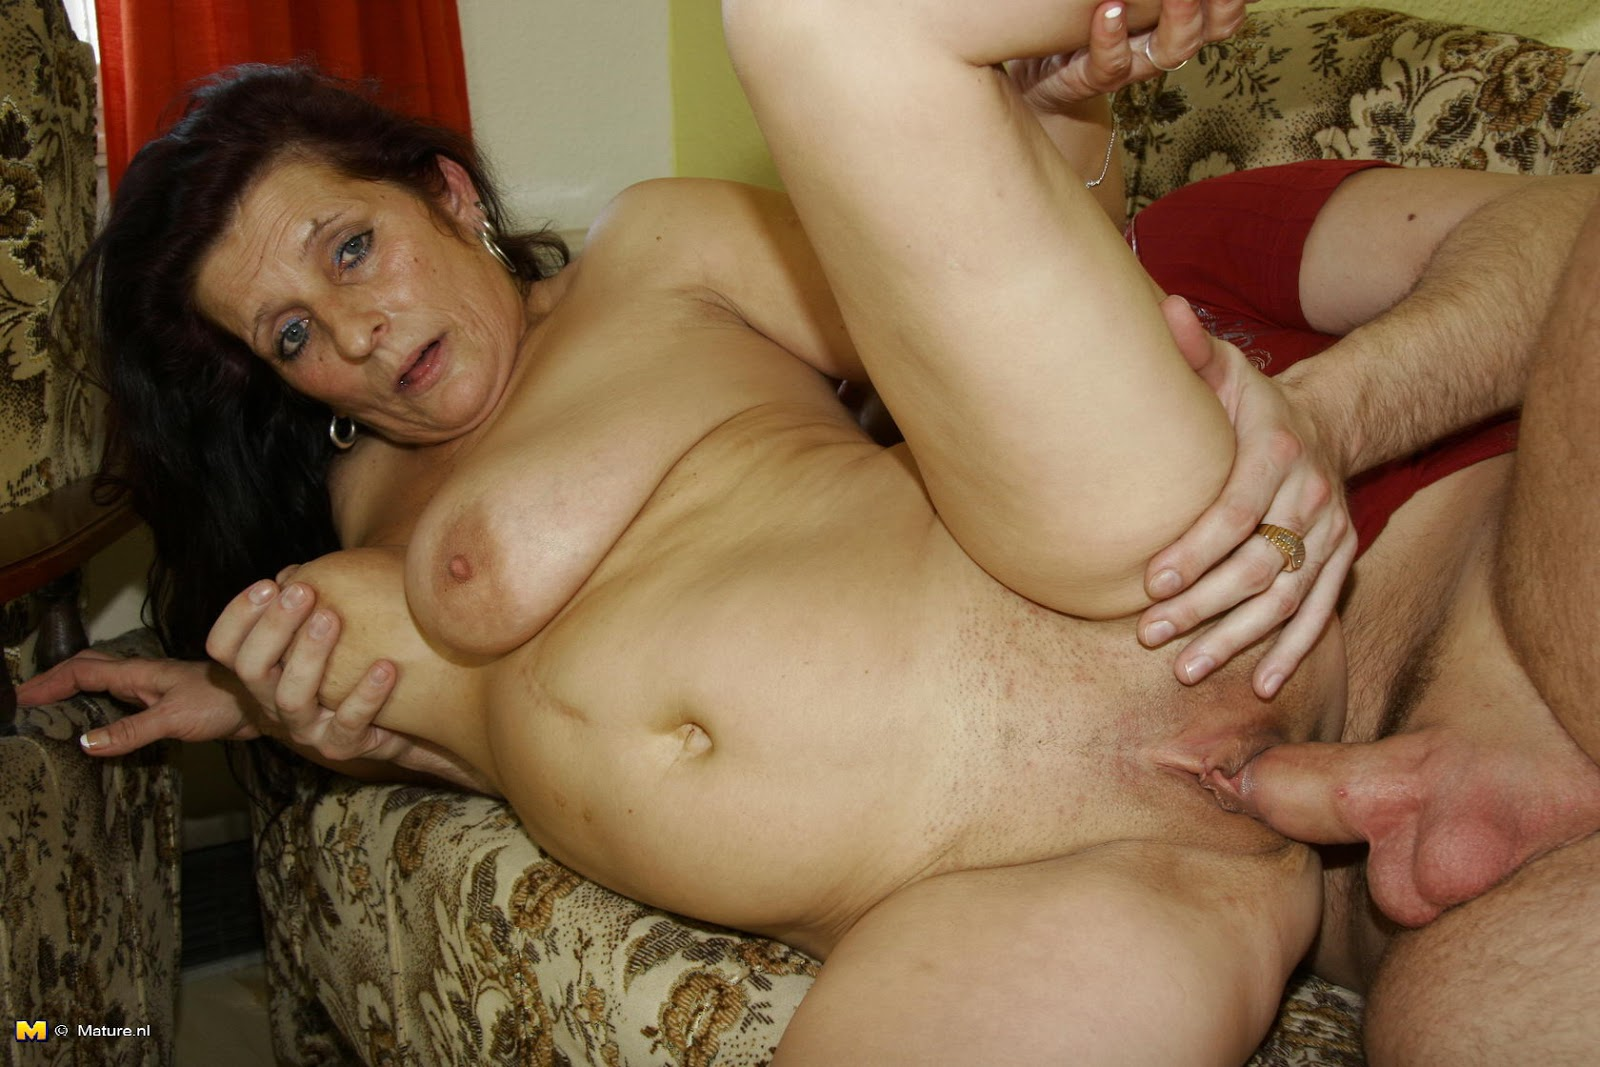 Naked mature women getting fucked